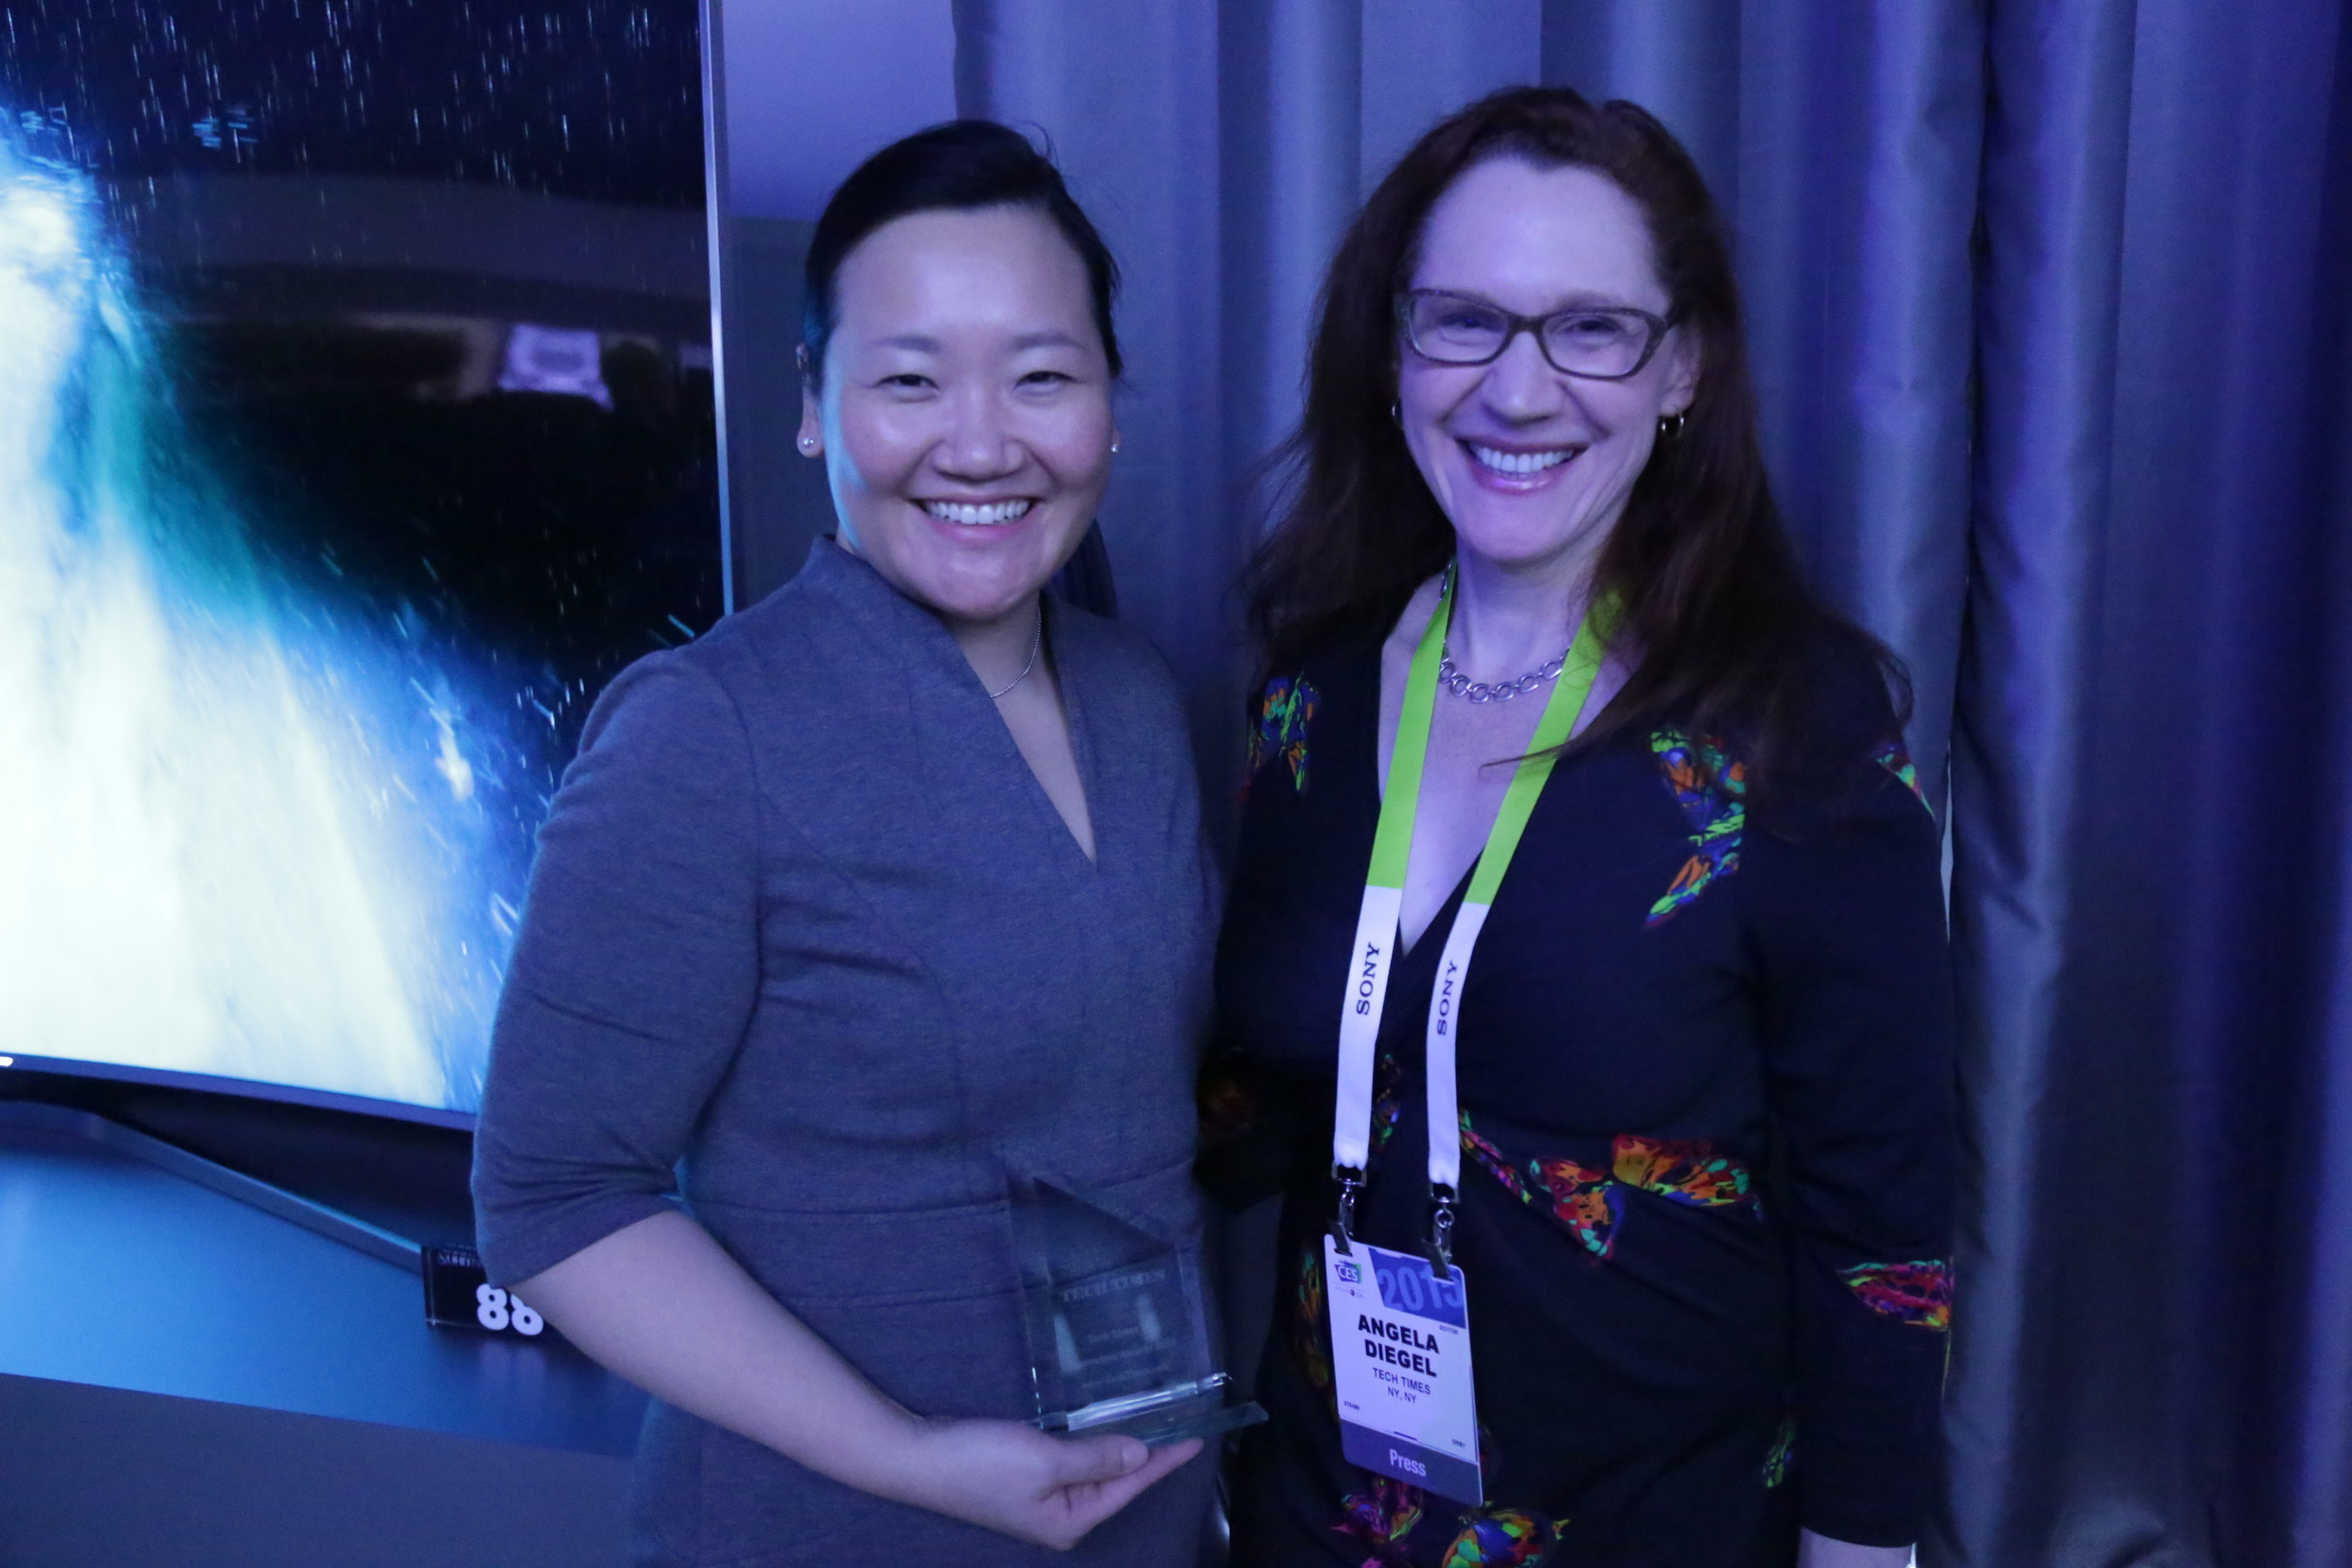 """Tech Times announced Samsung Electronics as one of the recipients of Tech Times '10' Innovation Awards 2015. The winning products """"have the potential to impact consumers in a positive way, and we expect them to resonate immediately with our readers,"""" said Tech Times President Angela Diegel (right)."""